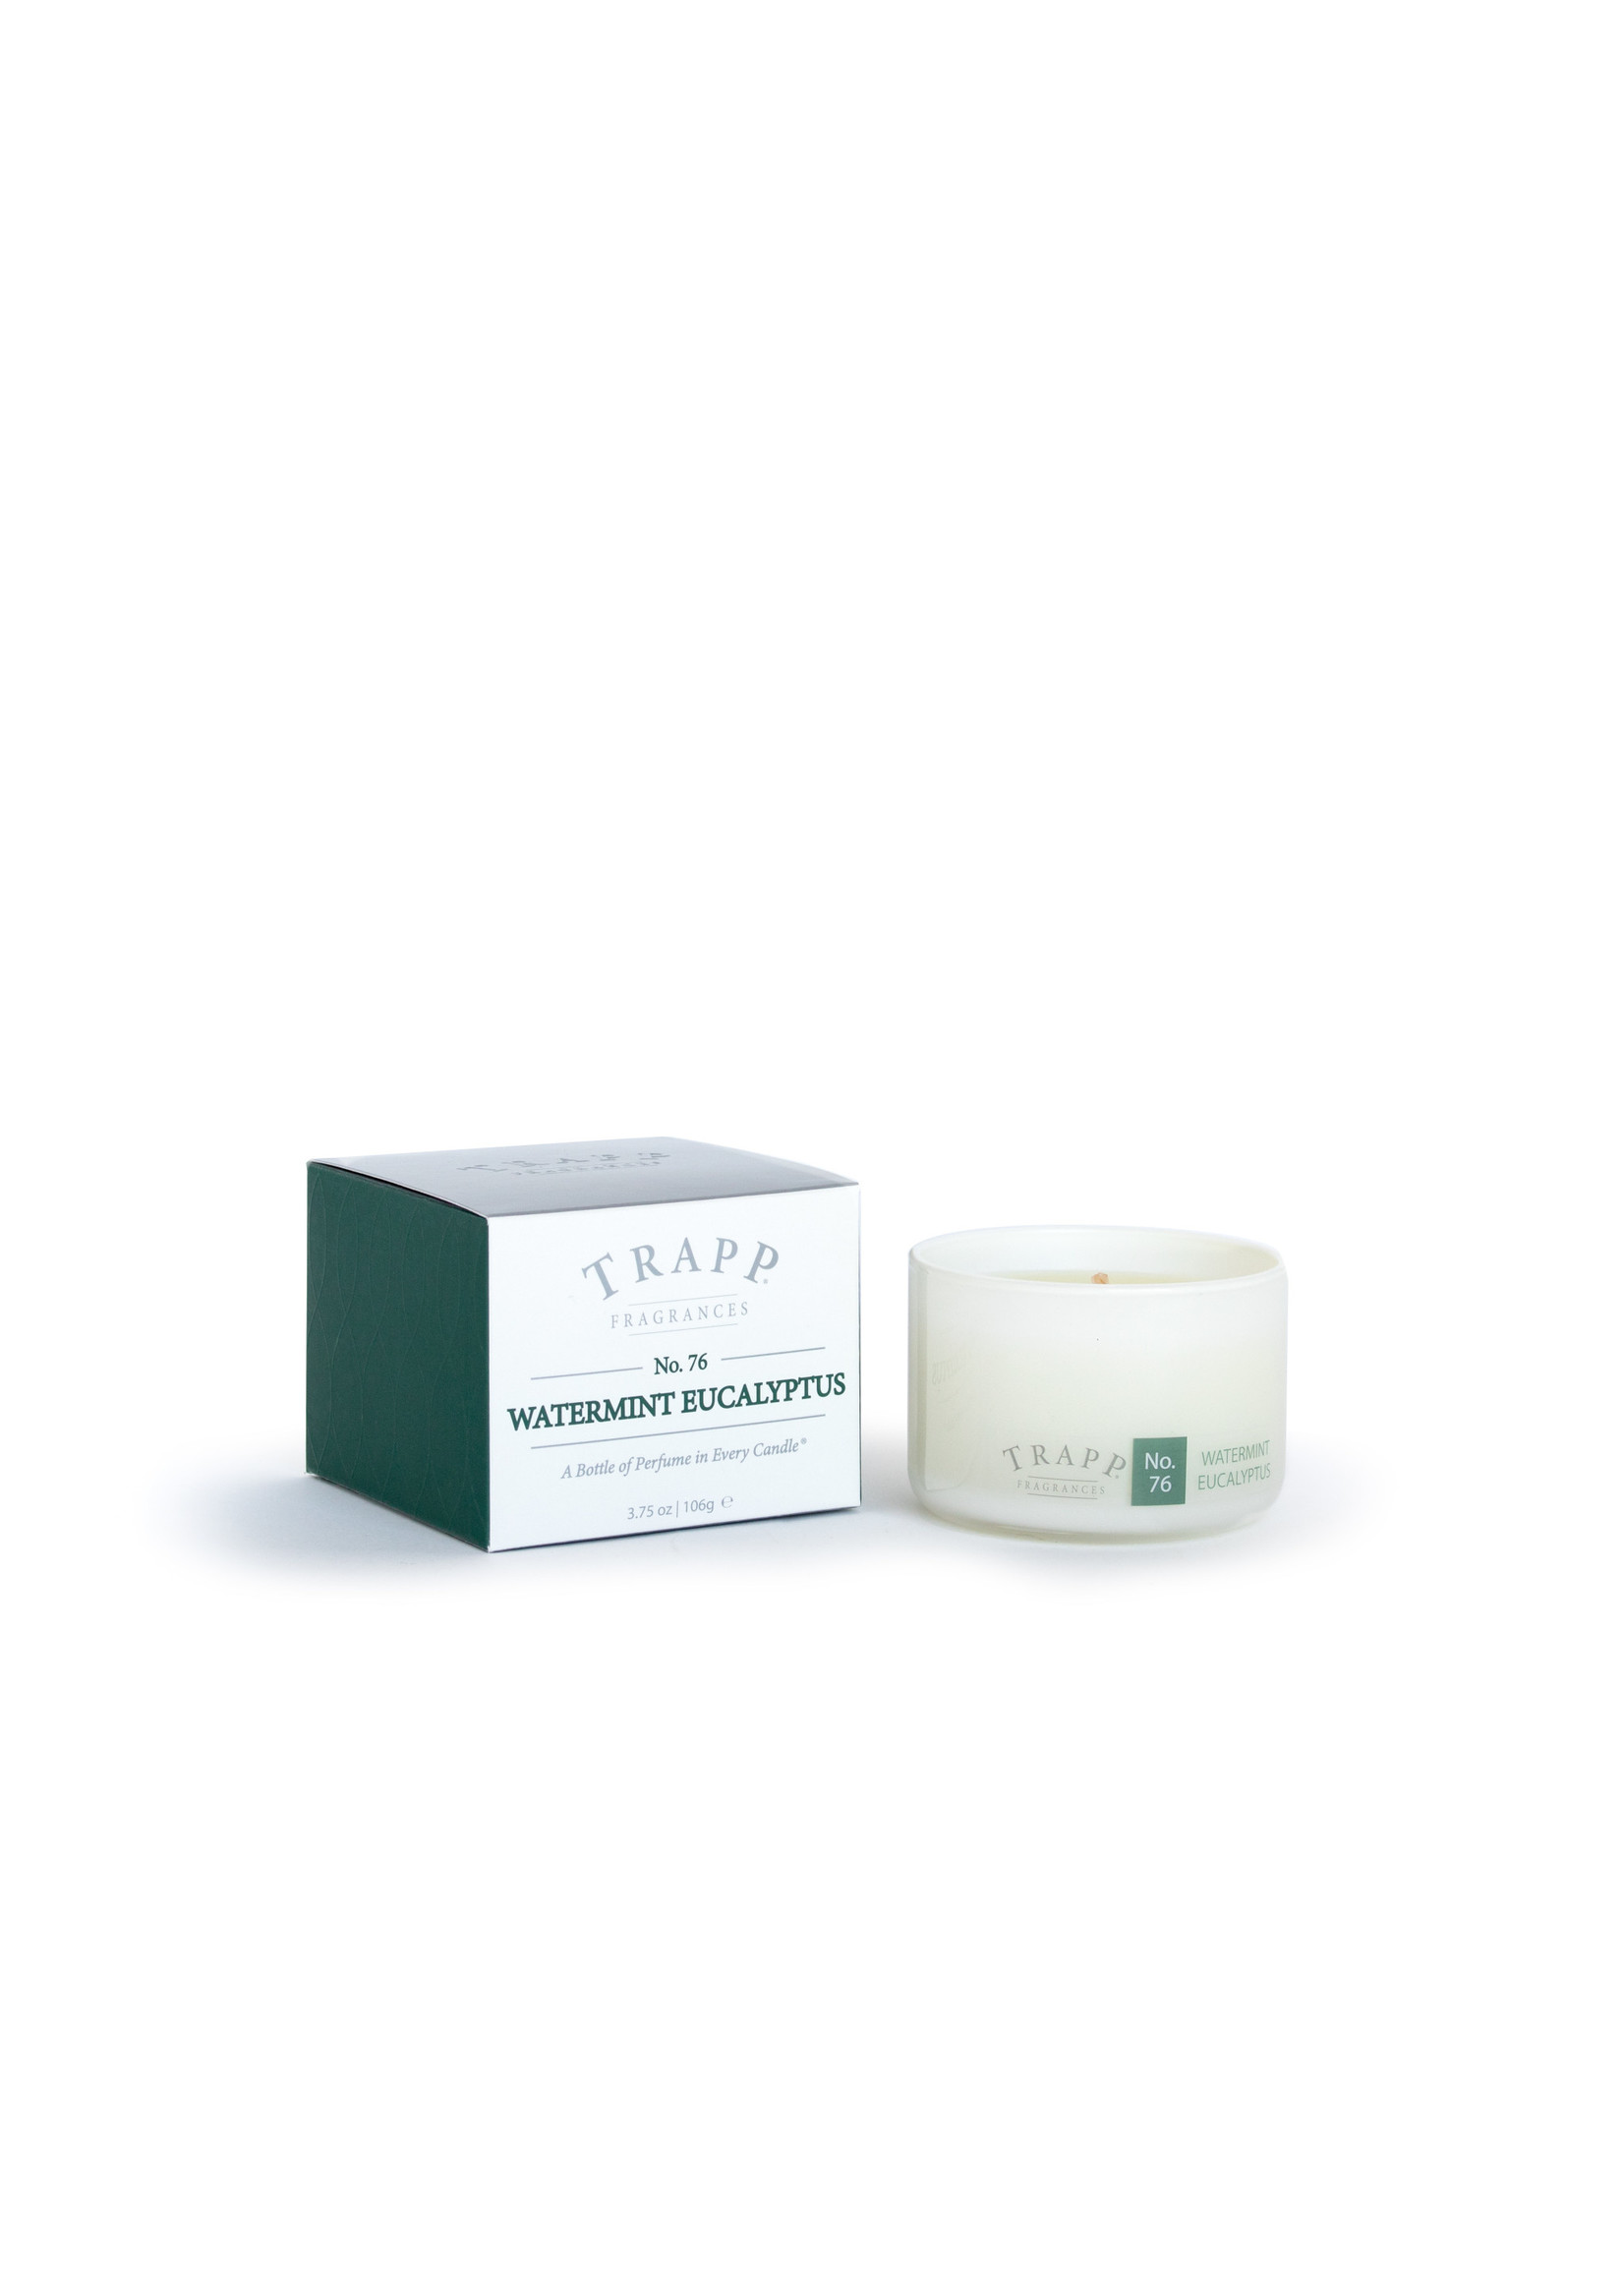 Trapp Candles Ambiance Collection - No. 76 Watermint Eucalyptus - 3.75 oz. Poured Candle